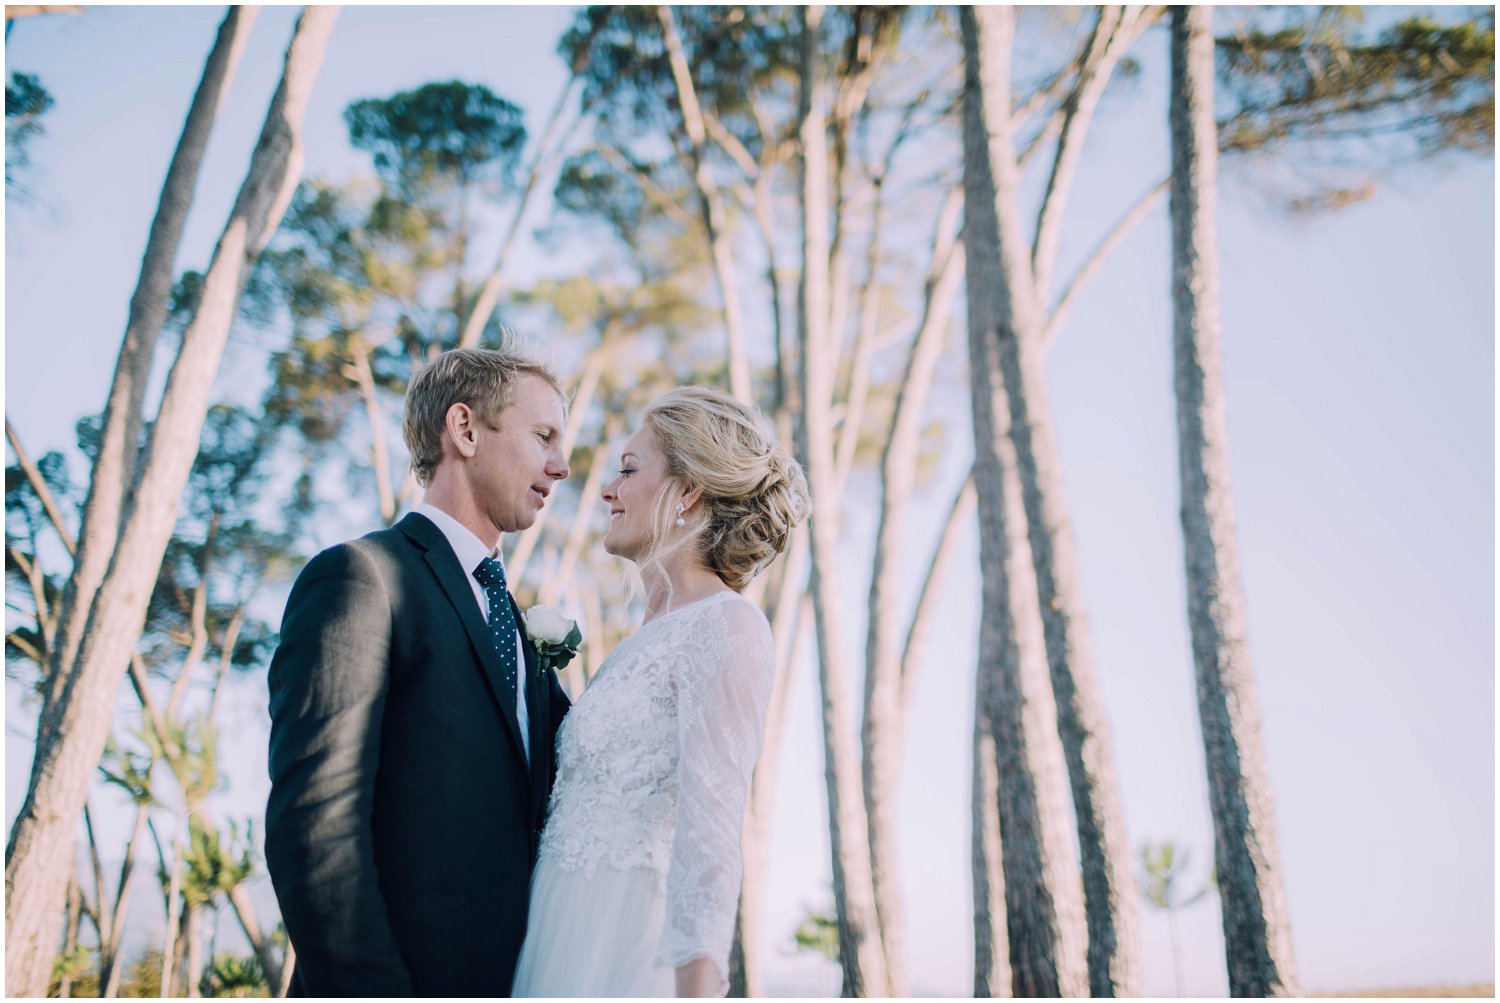 Top Wedding Photographer Cape Town South Africa Artistic Creative Documentary Wedding Photography Rue Kruger_0754.jpg